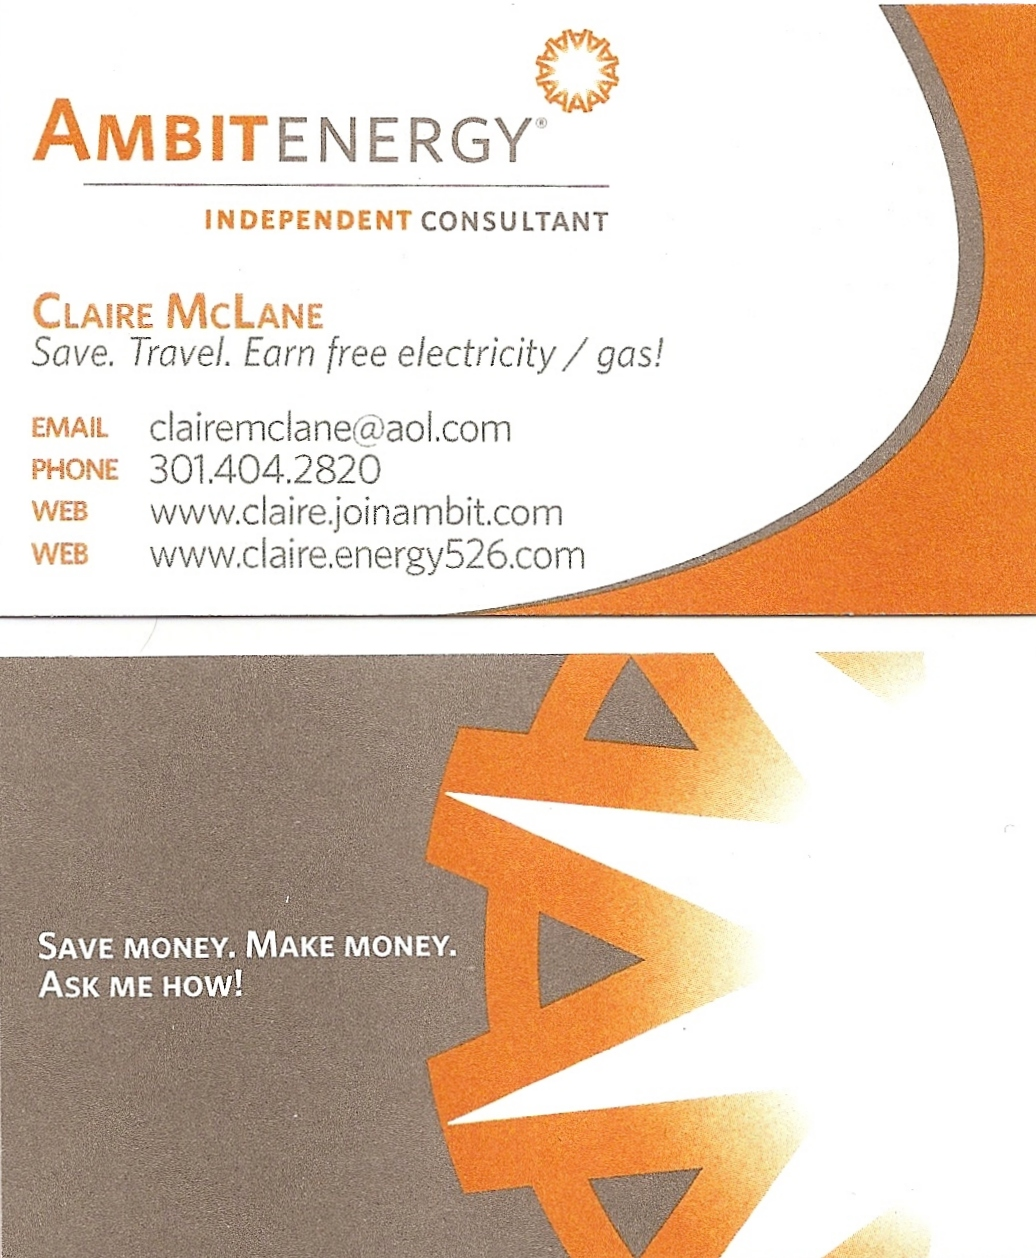 Ambit business cards ambit business card design 3 2 x 35 business x business card template business card sample ambit energy business card template wajeb Image collections